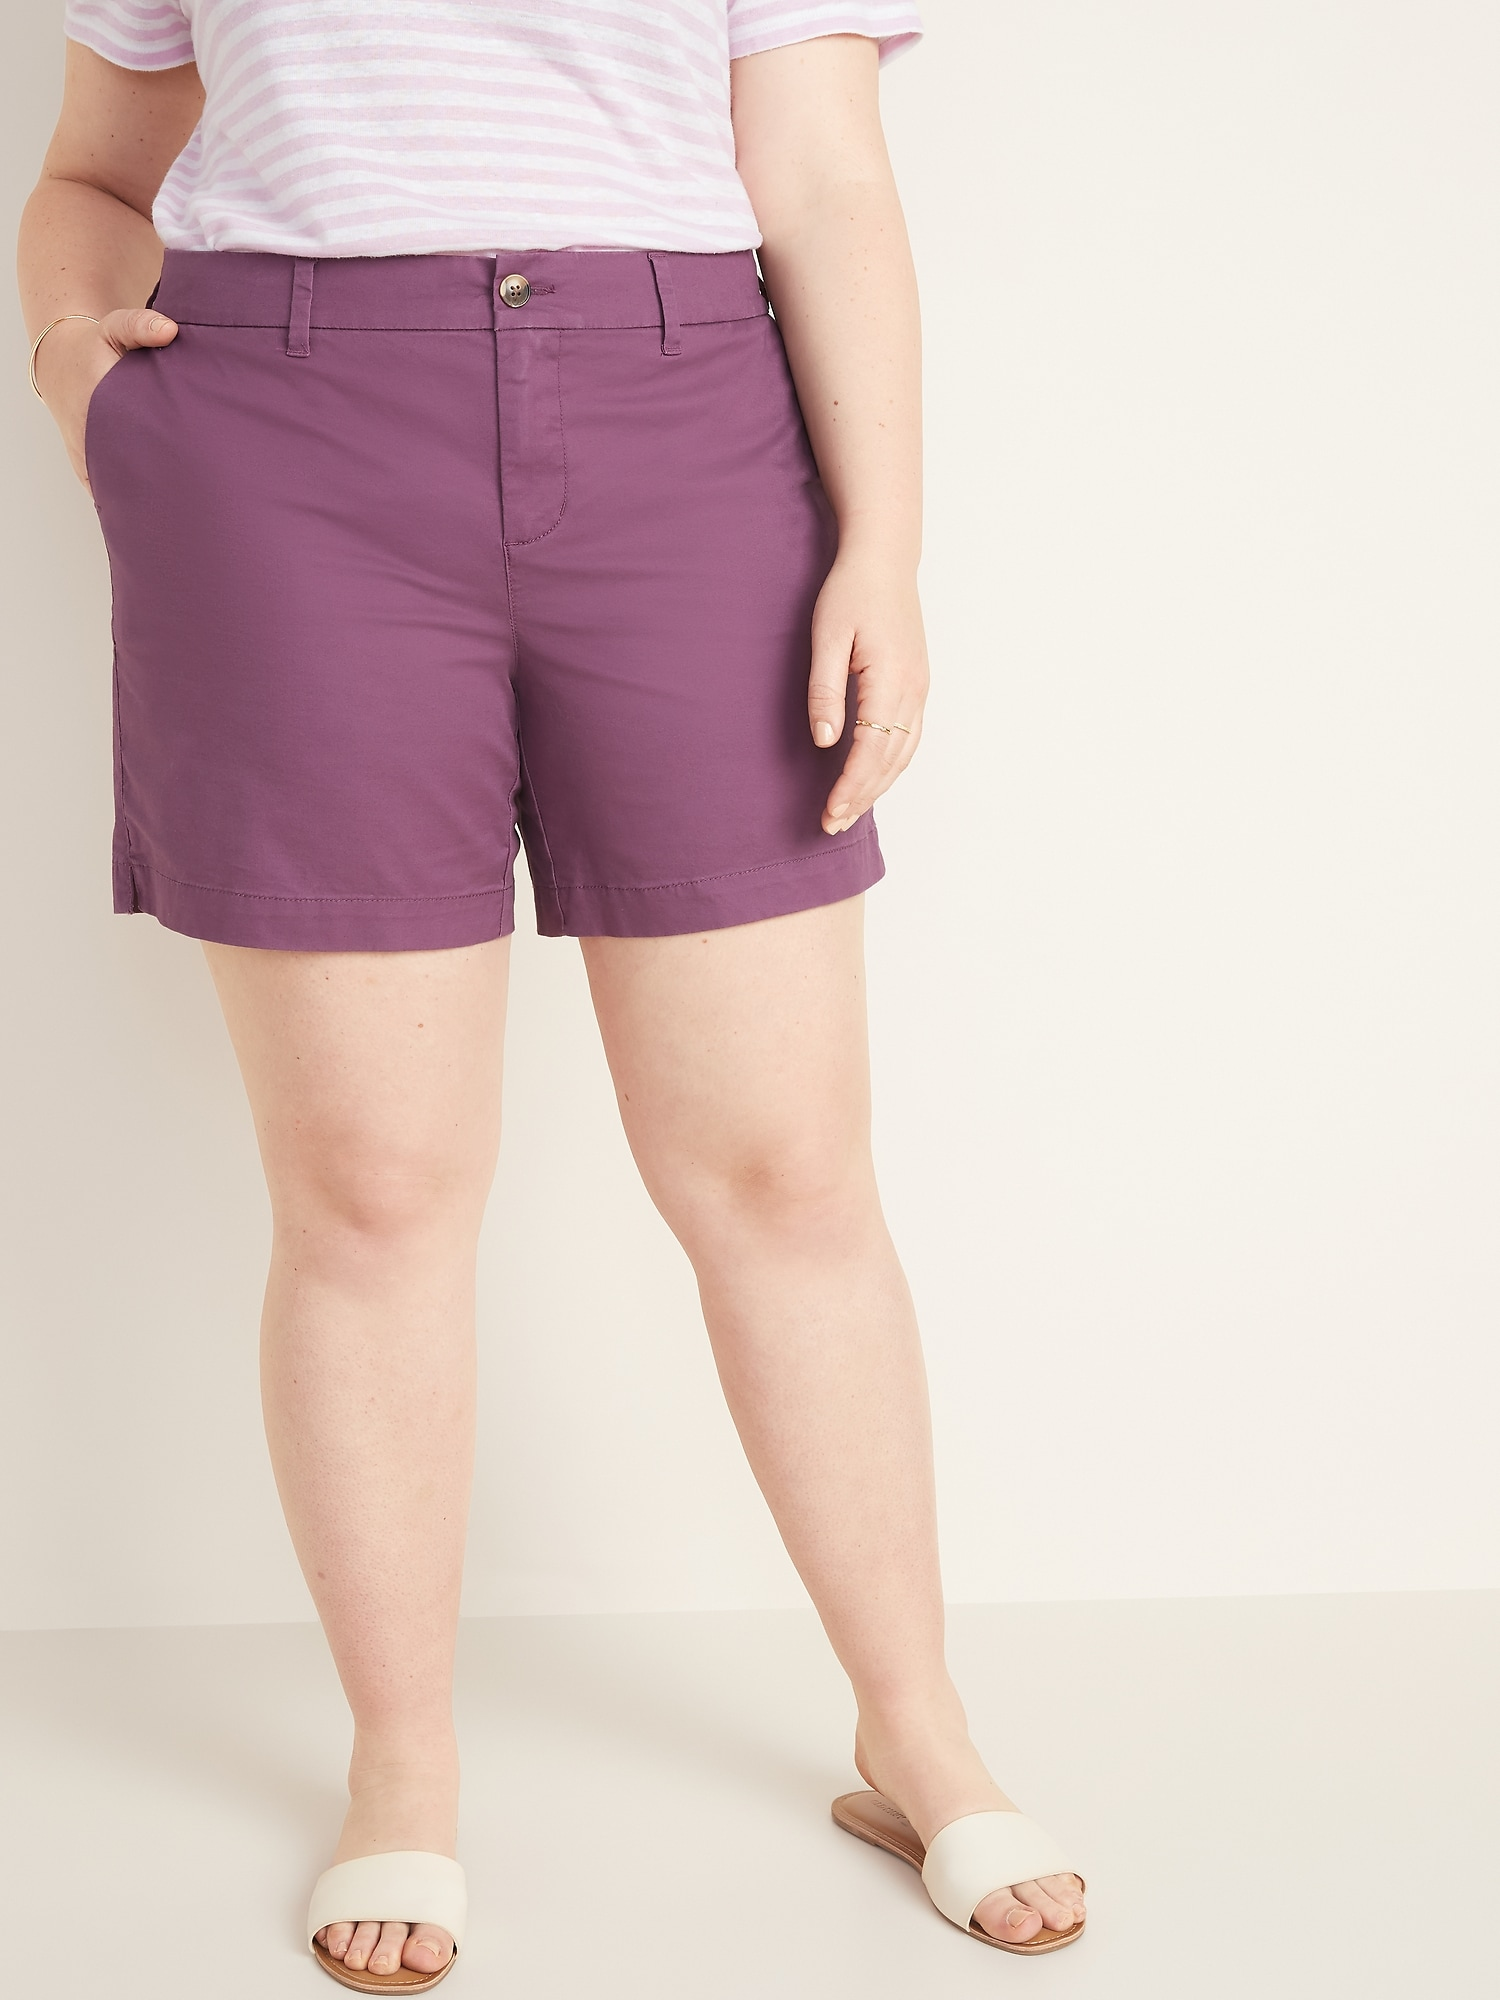 e988818899 Mid-Rise Plus-Size Twill Everyday Shorts - 7-Inch Inseam | Old Navy